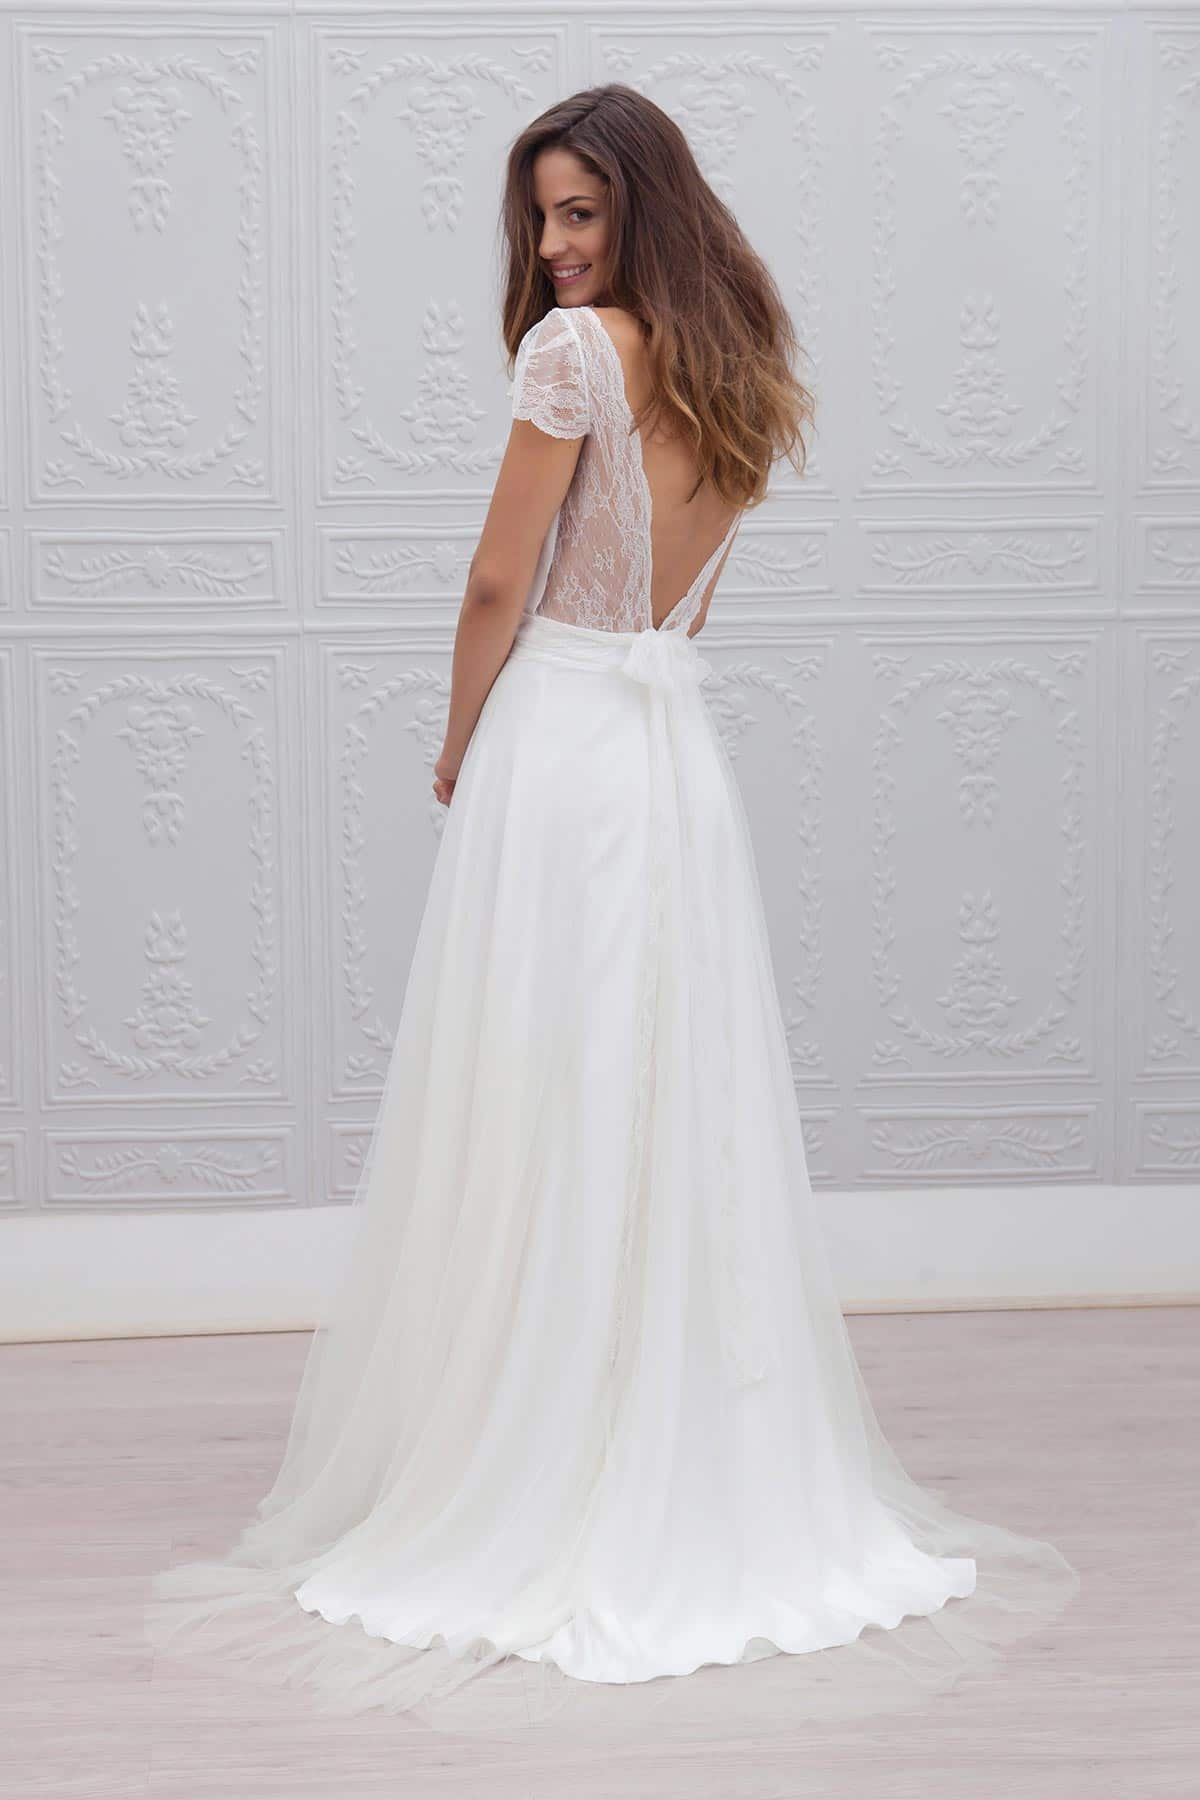 Marie Laporte collection 2015 Marie Laporte Collection 2015 11 - Blog Mariage